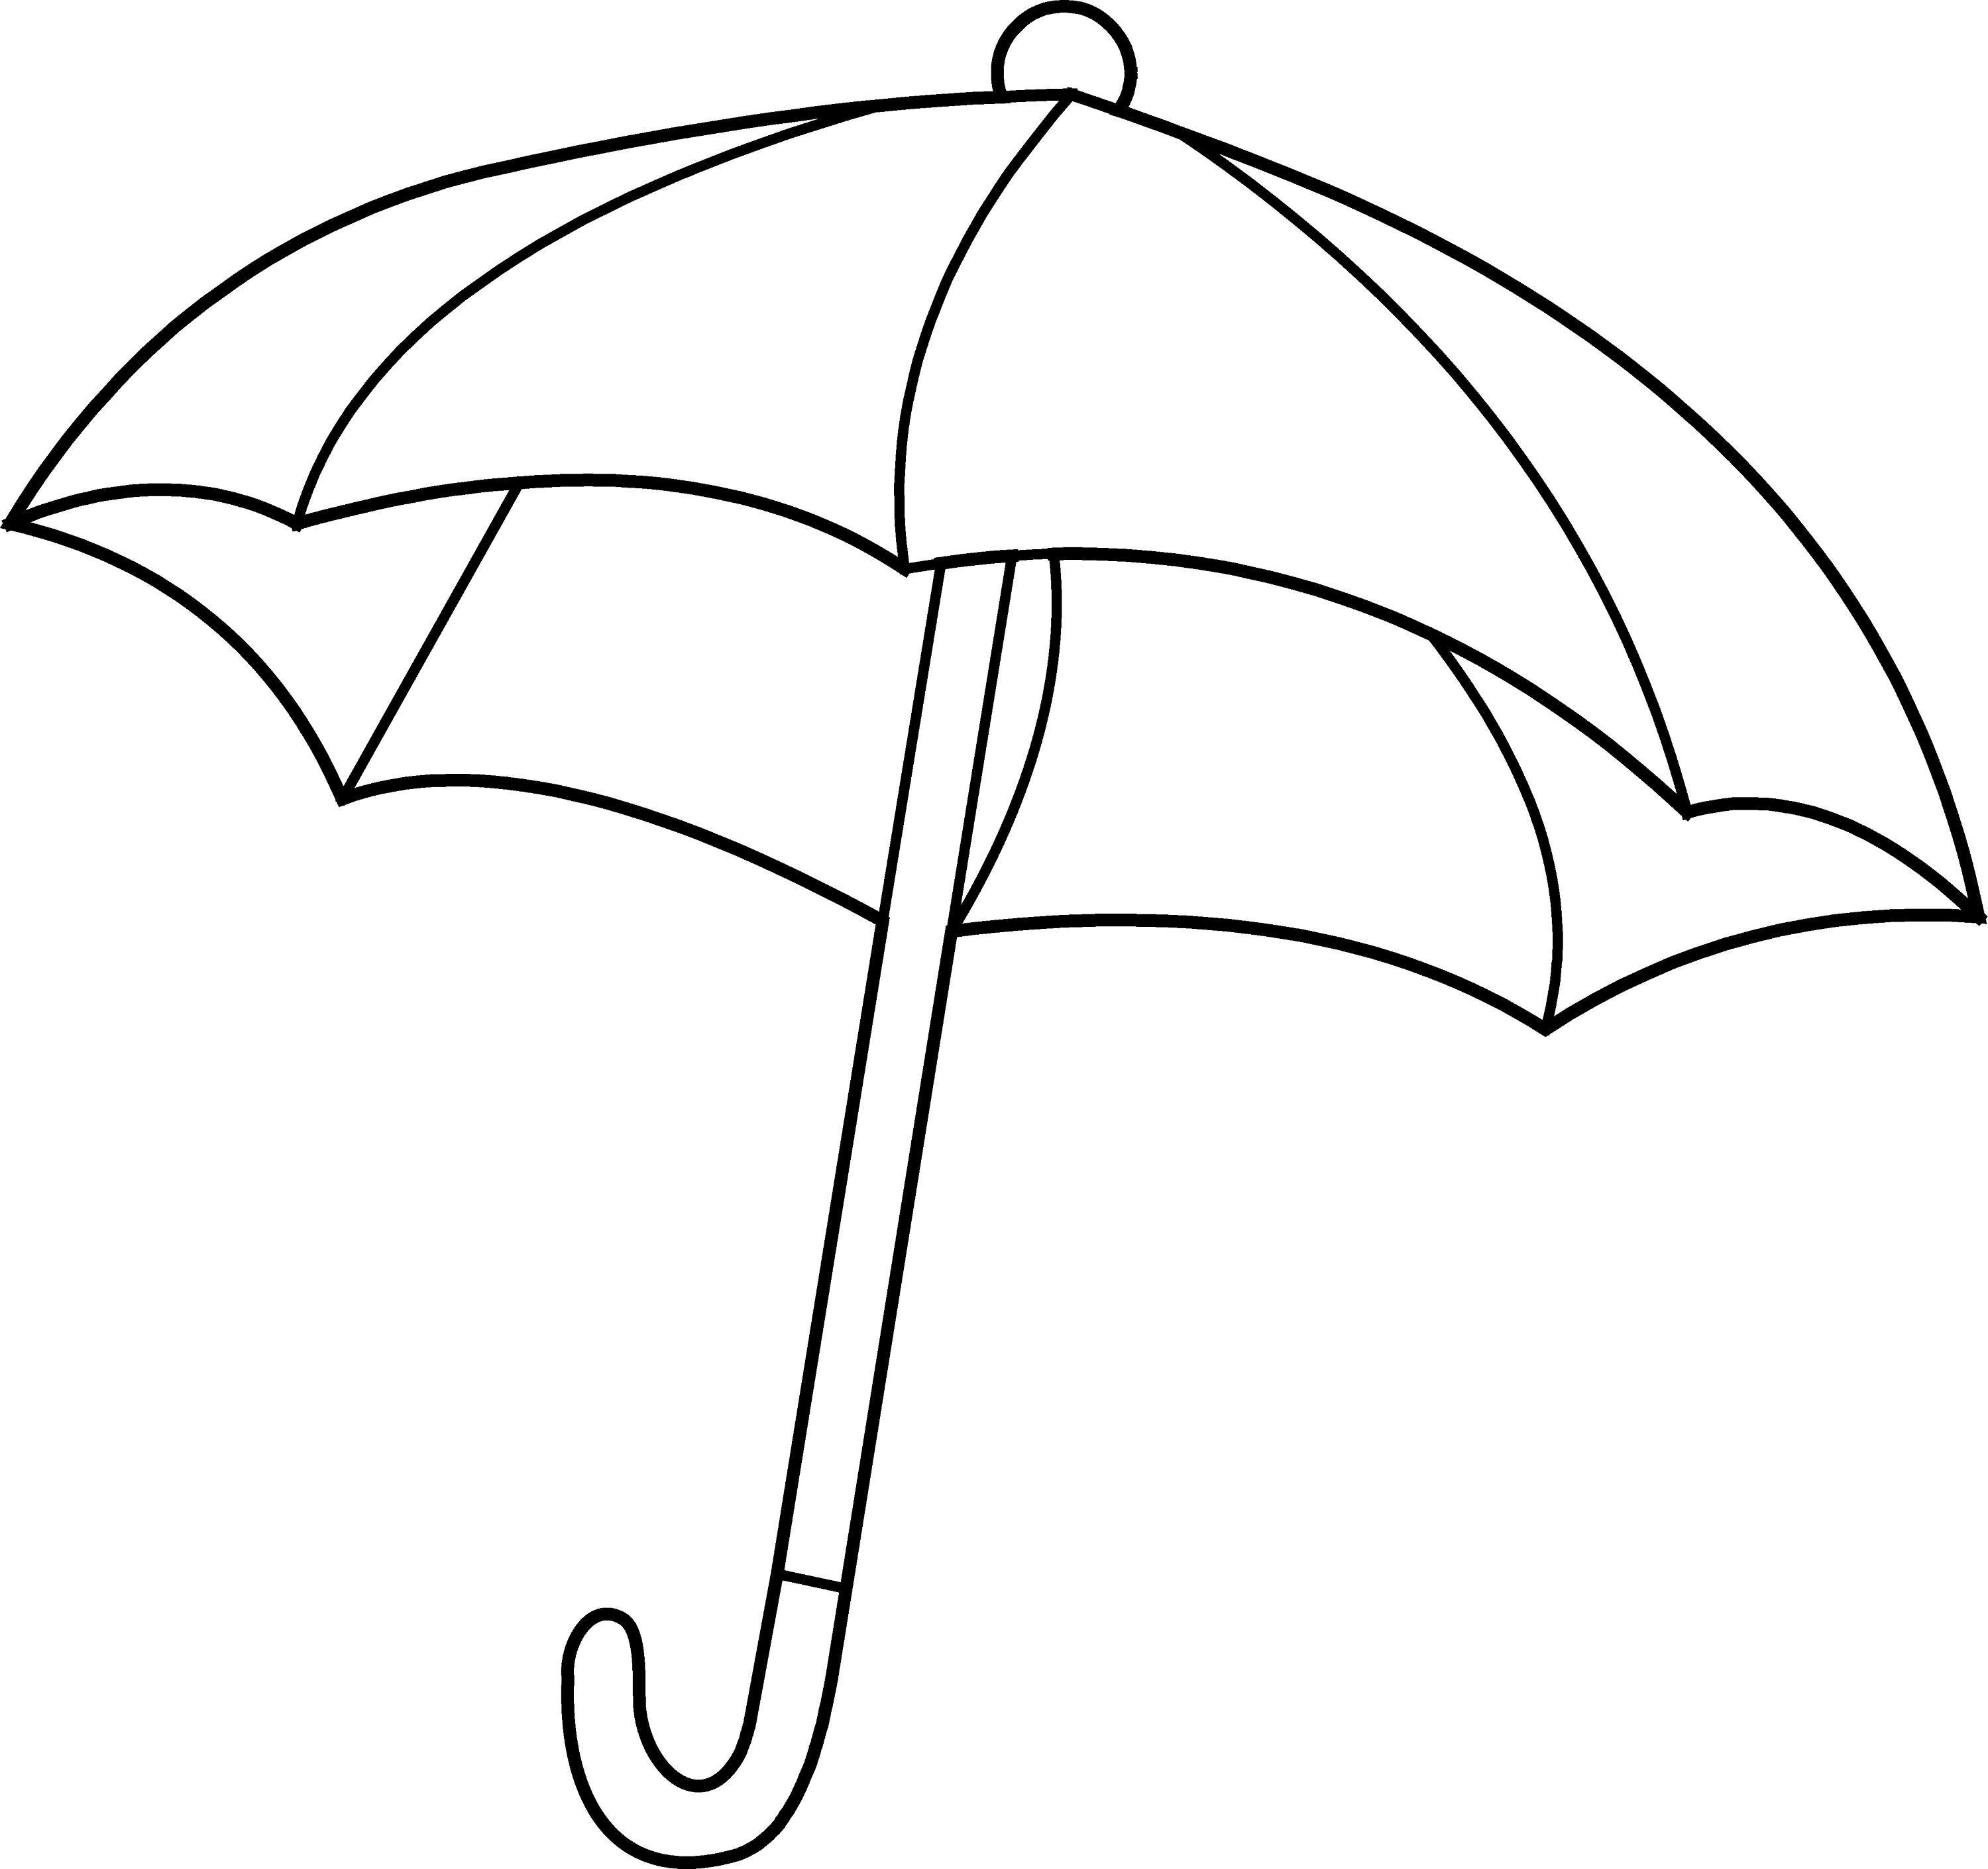 Umbrella Coloring Page Free Clip Art